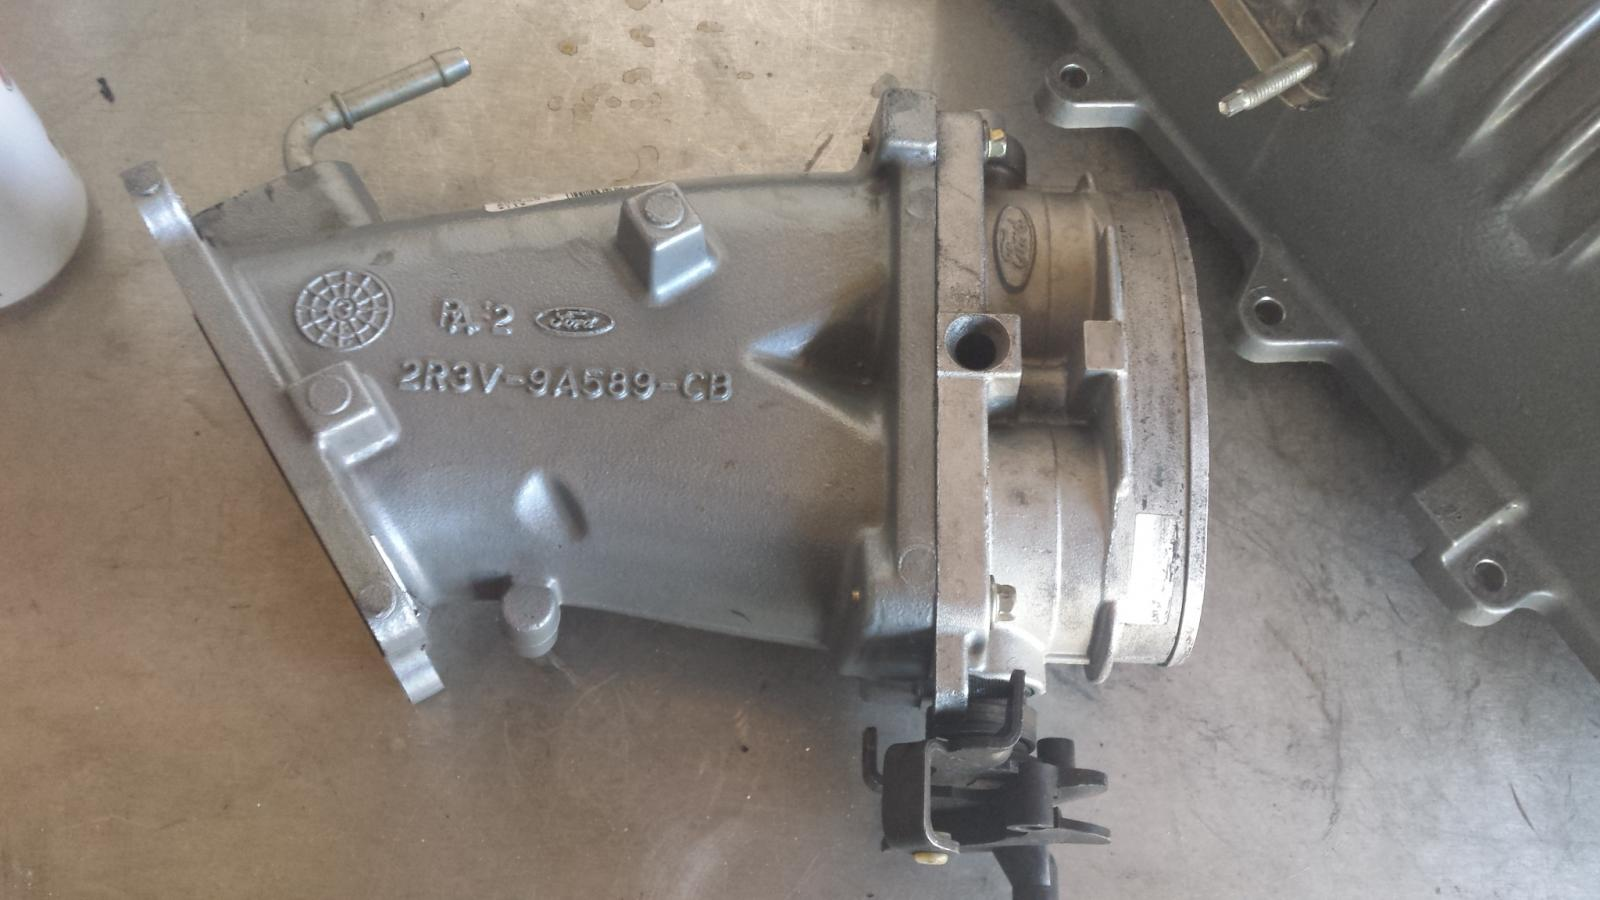 Eaton M112 Supercharger & throttle body from a Terminator